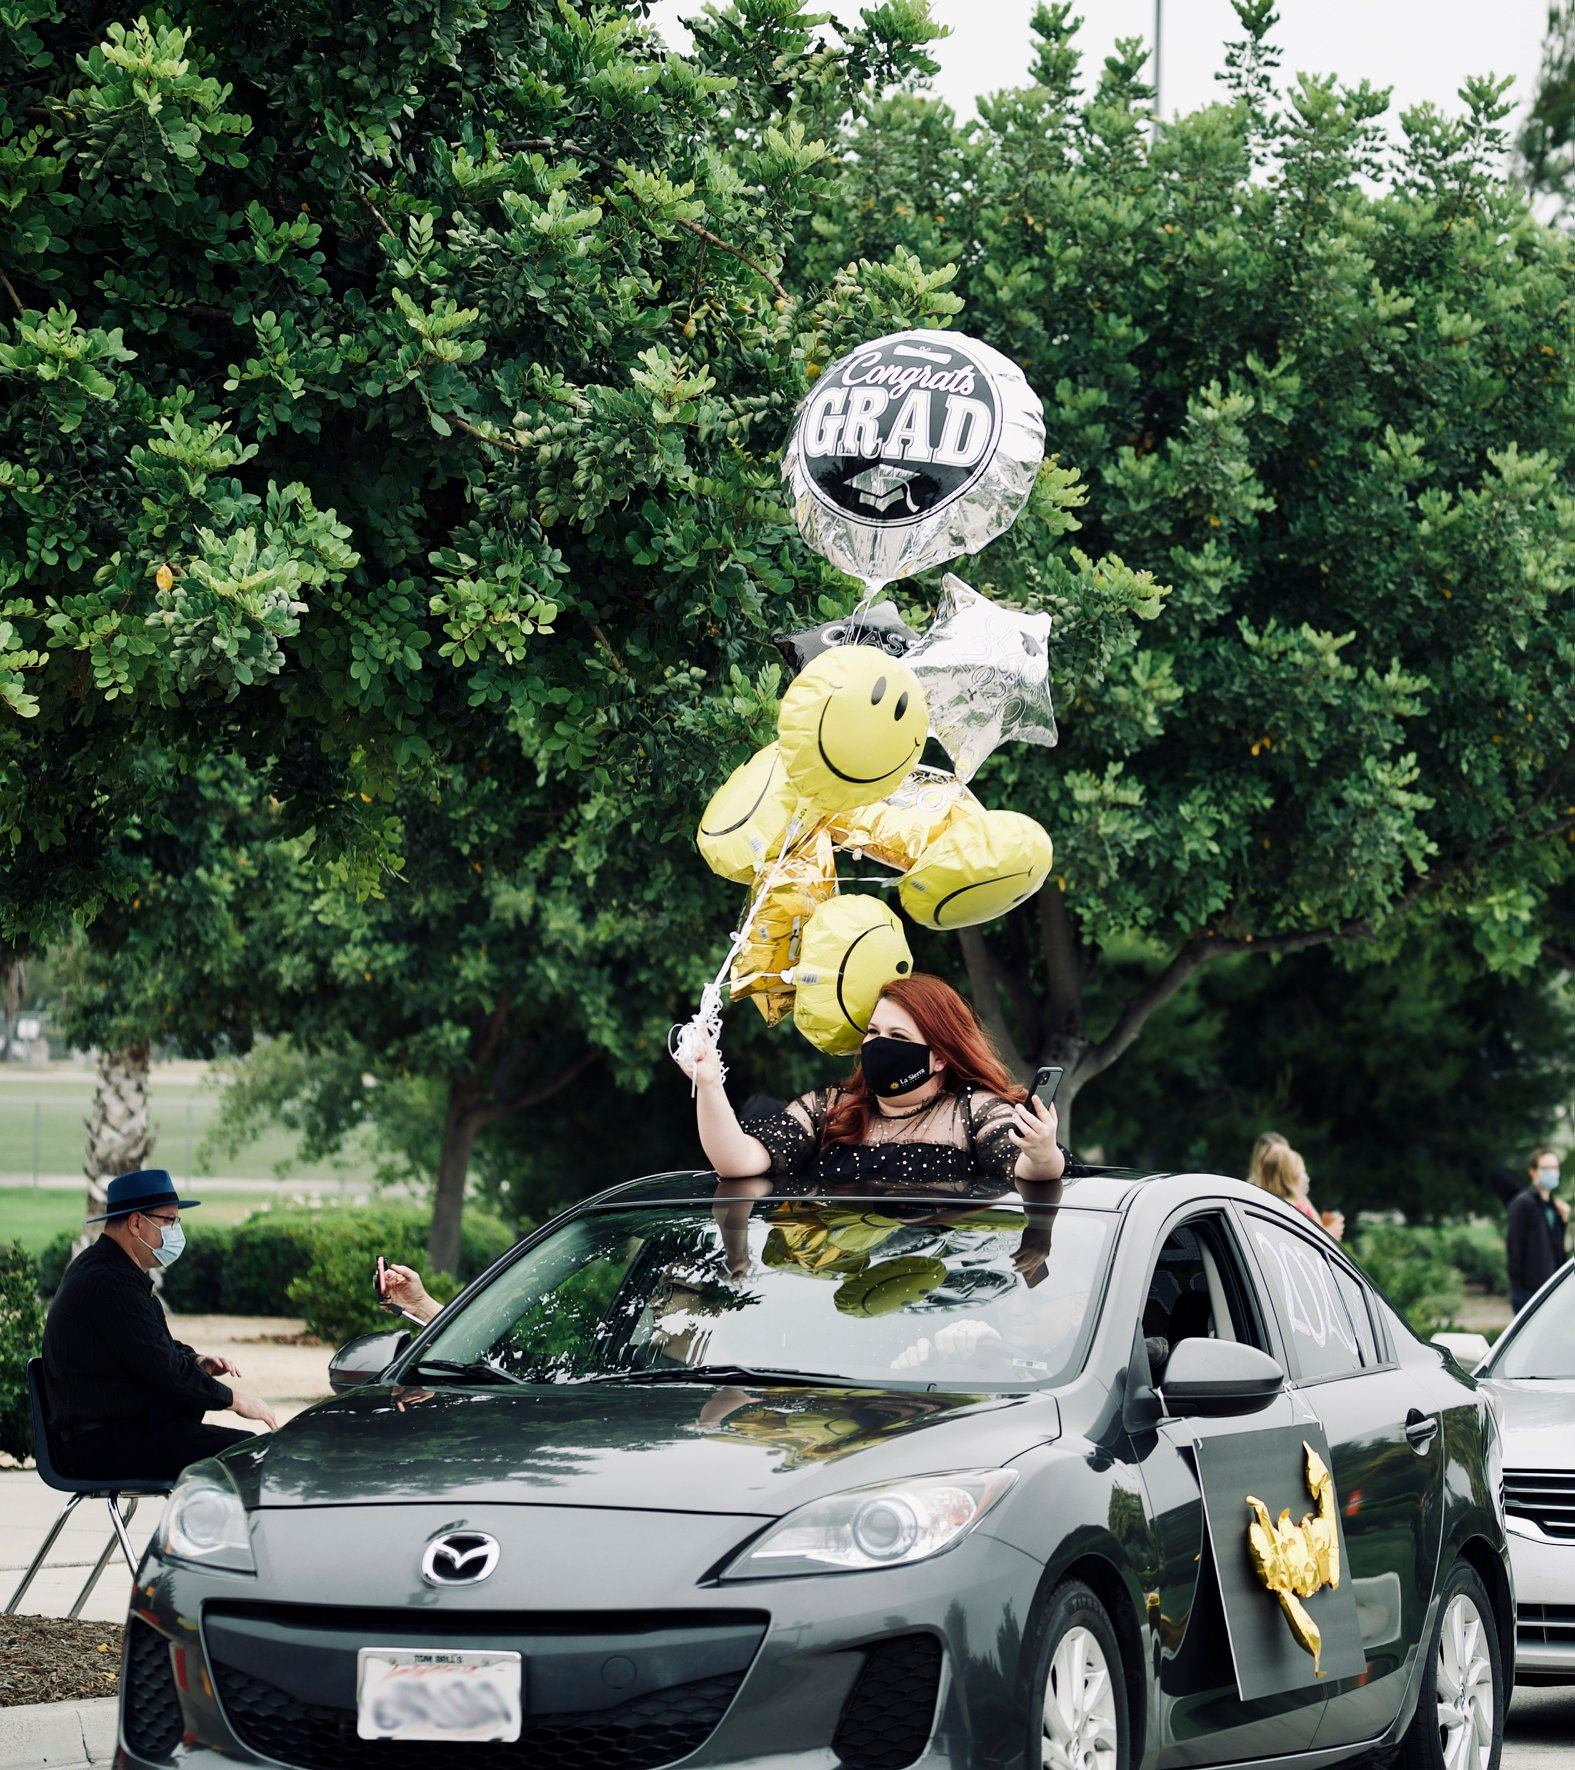 A La Sierra University graduate holds balloons out of a car's sunroof during the